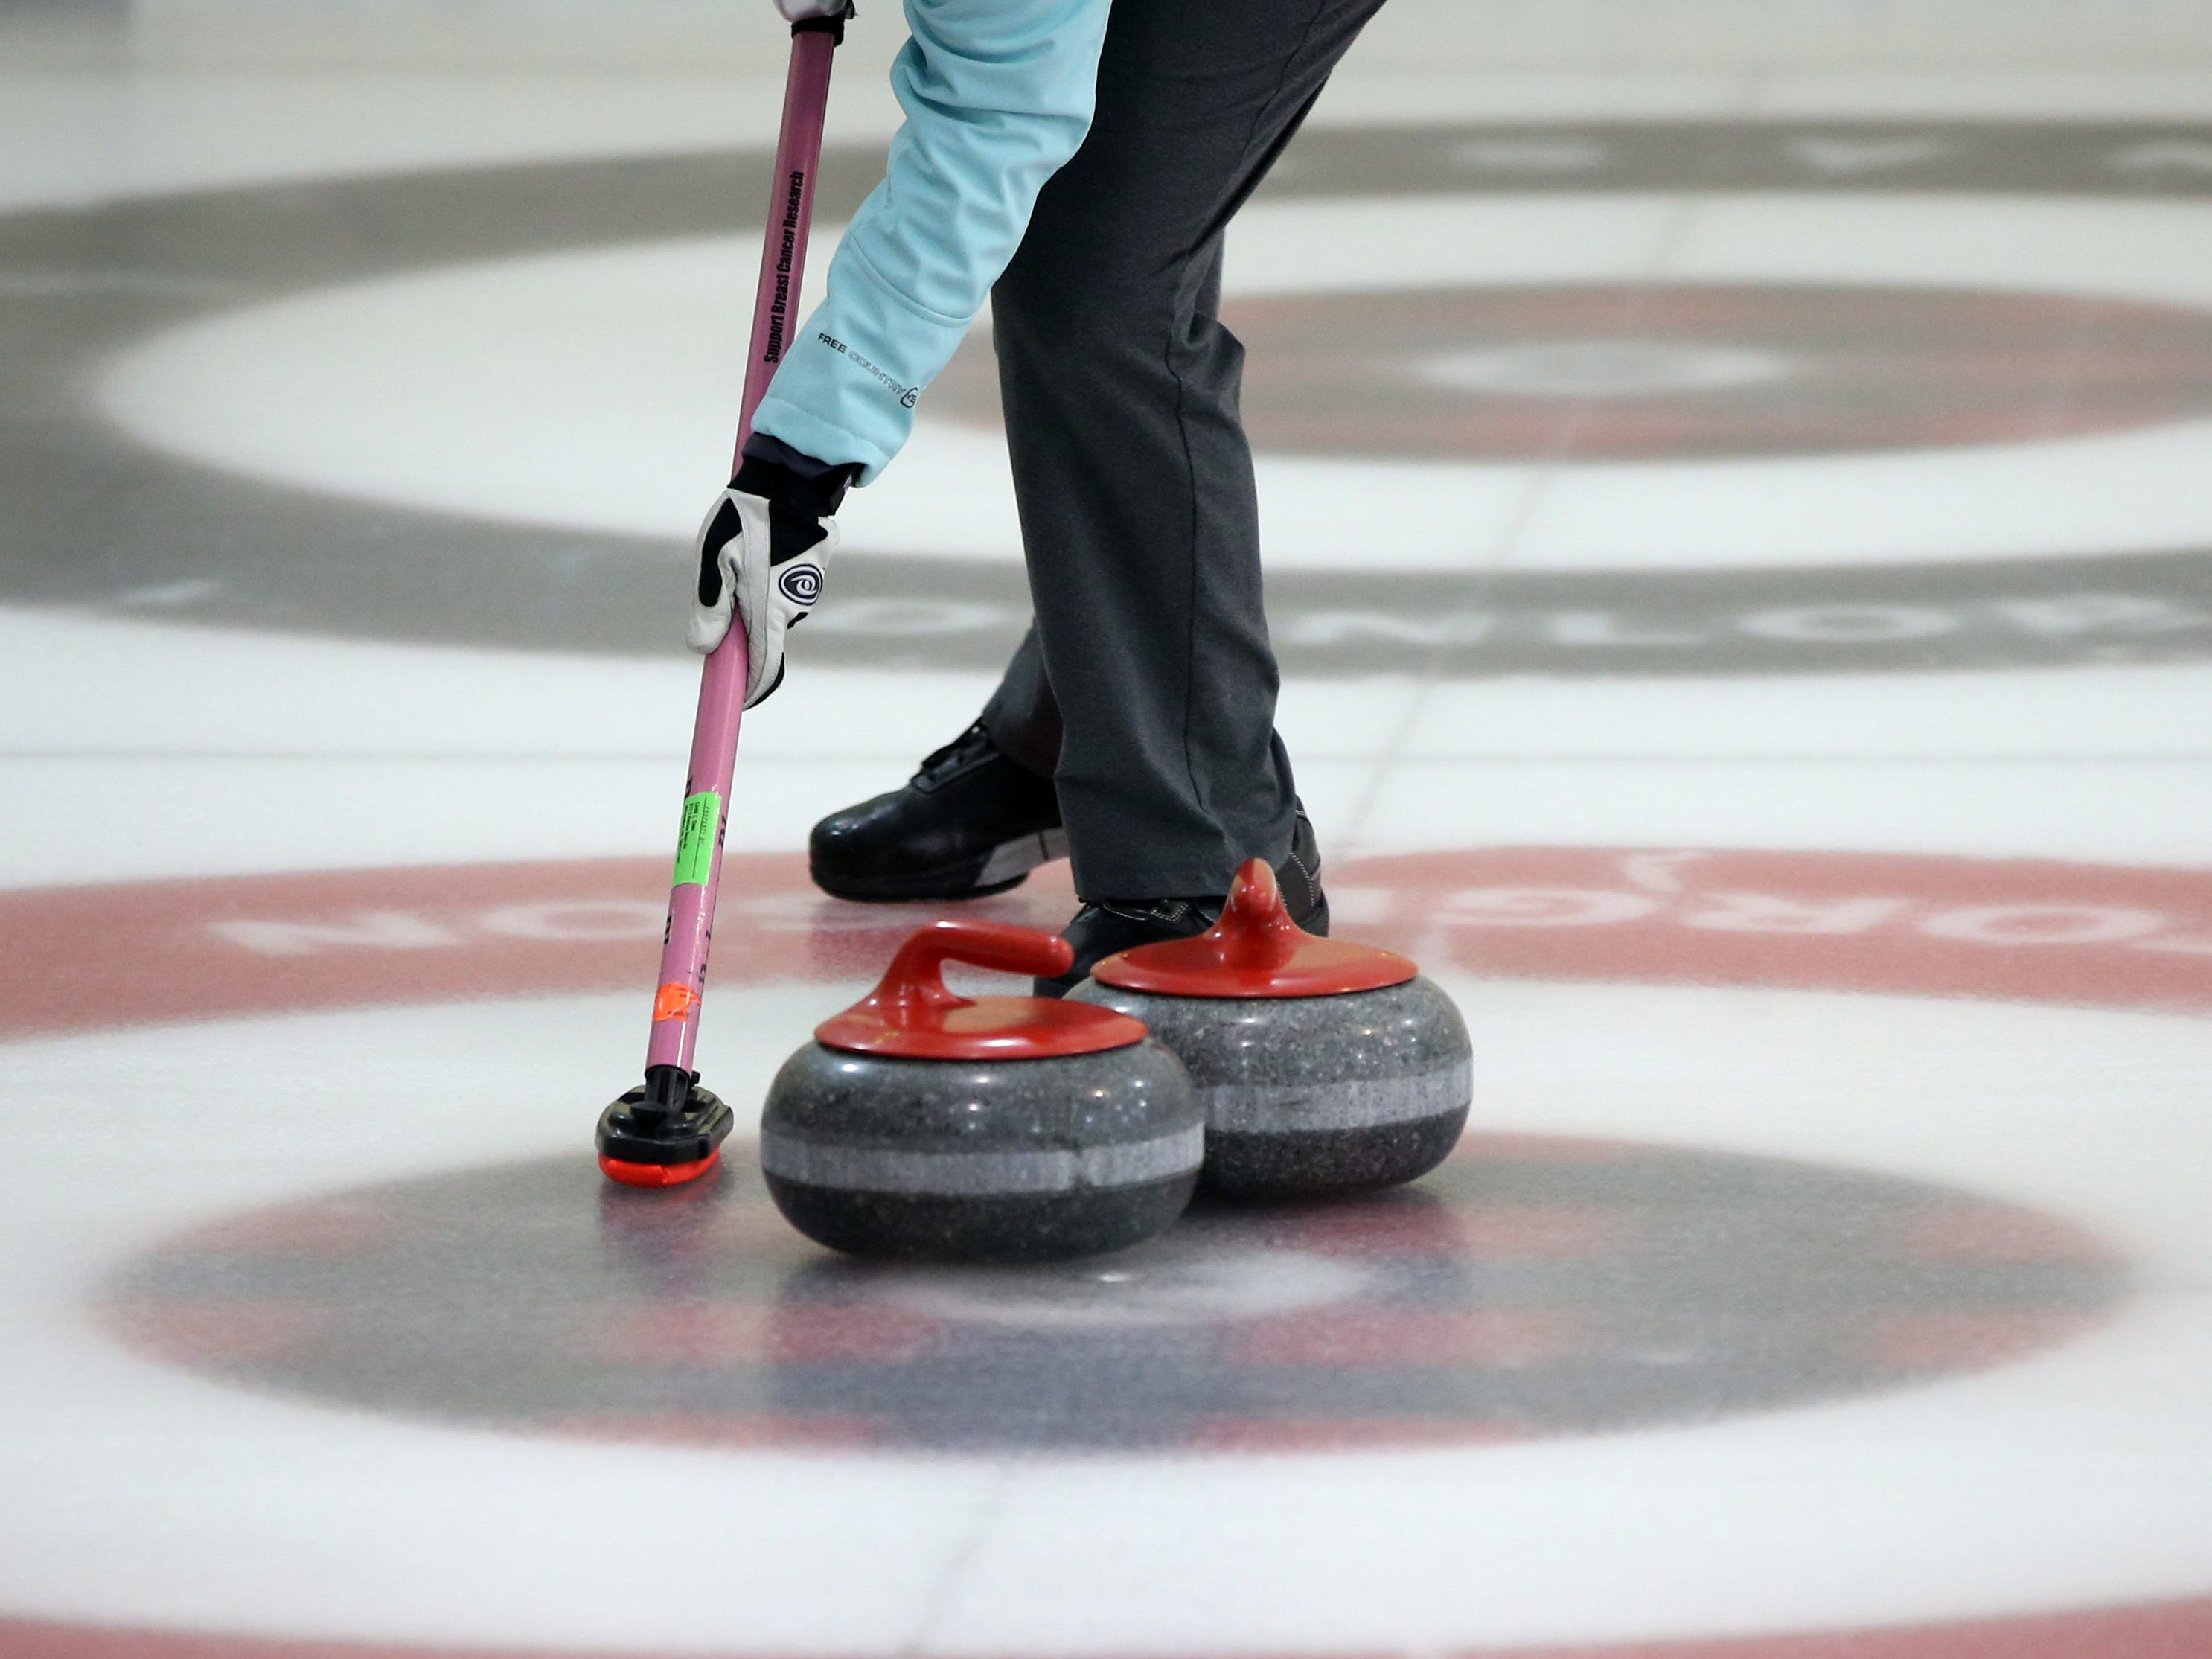 A player sweeps the ice to control the speed and direction of a stone during the Wauwatosa Curling Club's 60th annual Badger Women's Bonspiel at the Mueller Building in Hart Park on Jan. 25.